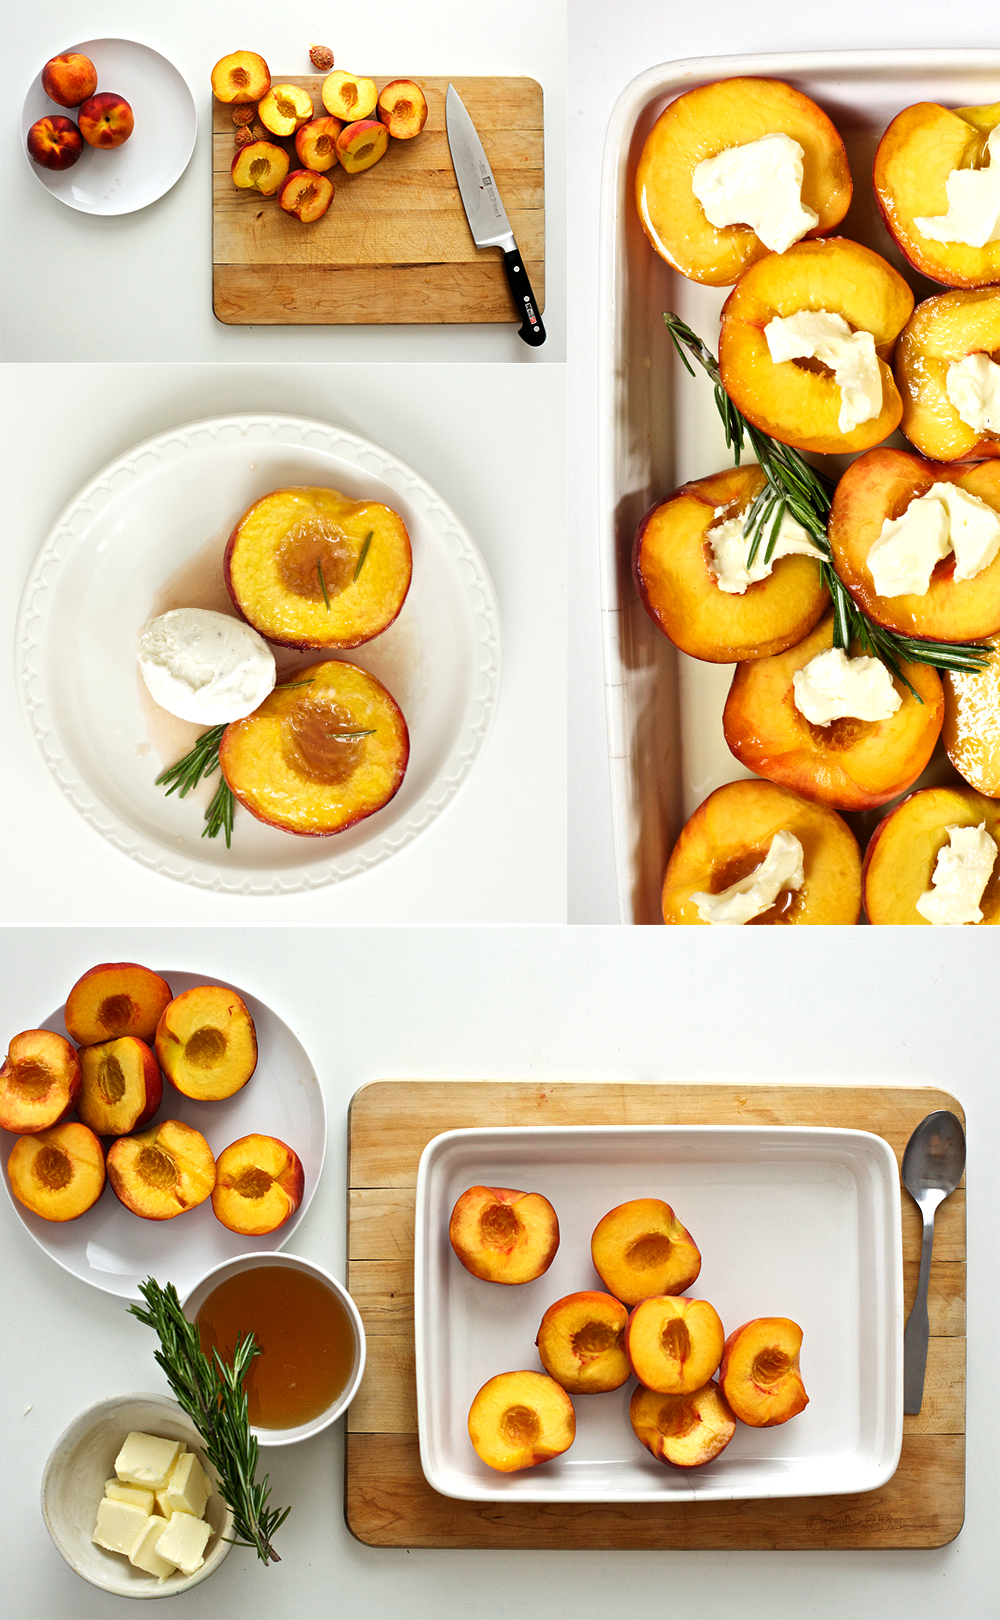 Evi-Abeler-Photography-roasted-peaches-collage.jpg